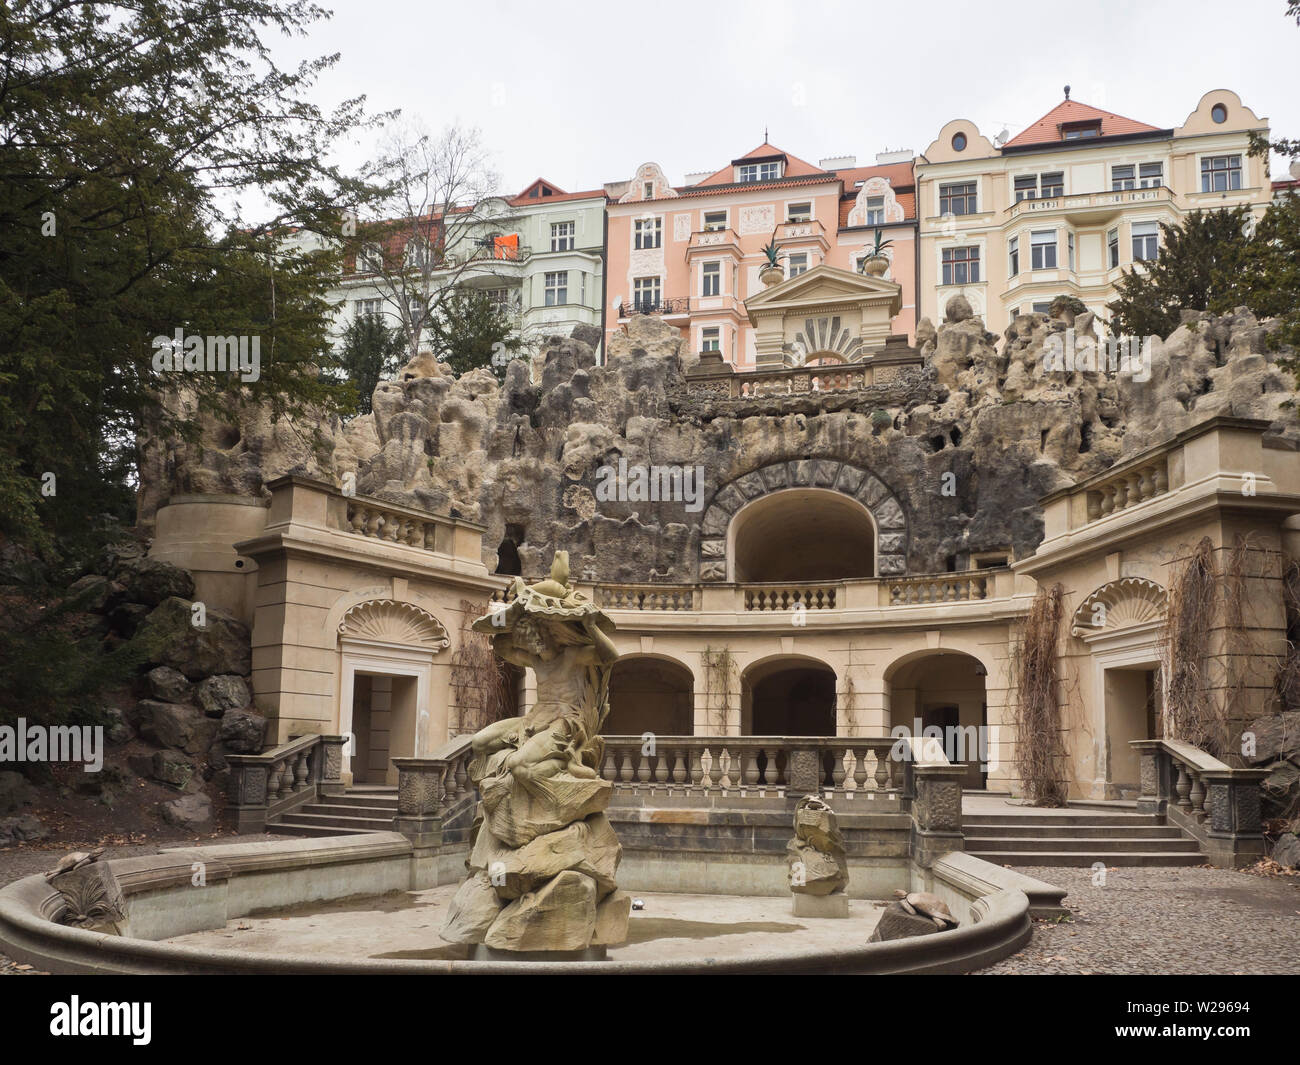 Grotta, an art nouveau style fountain construction in Havlíčkovy sady, the Havlicek Gardens in Prague in he Czech Republic Stock Photo